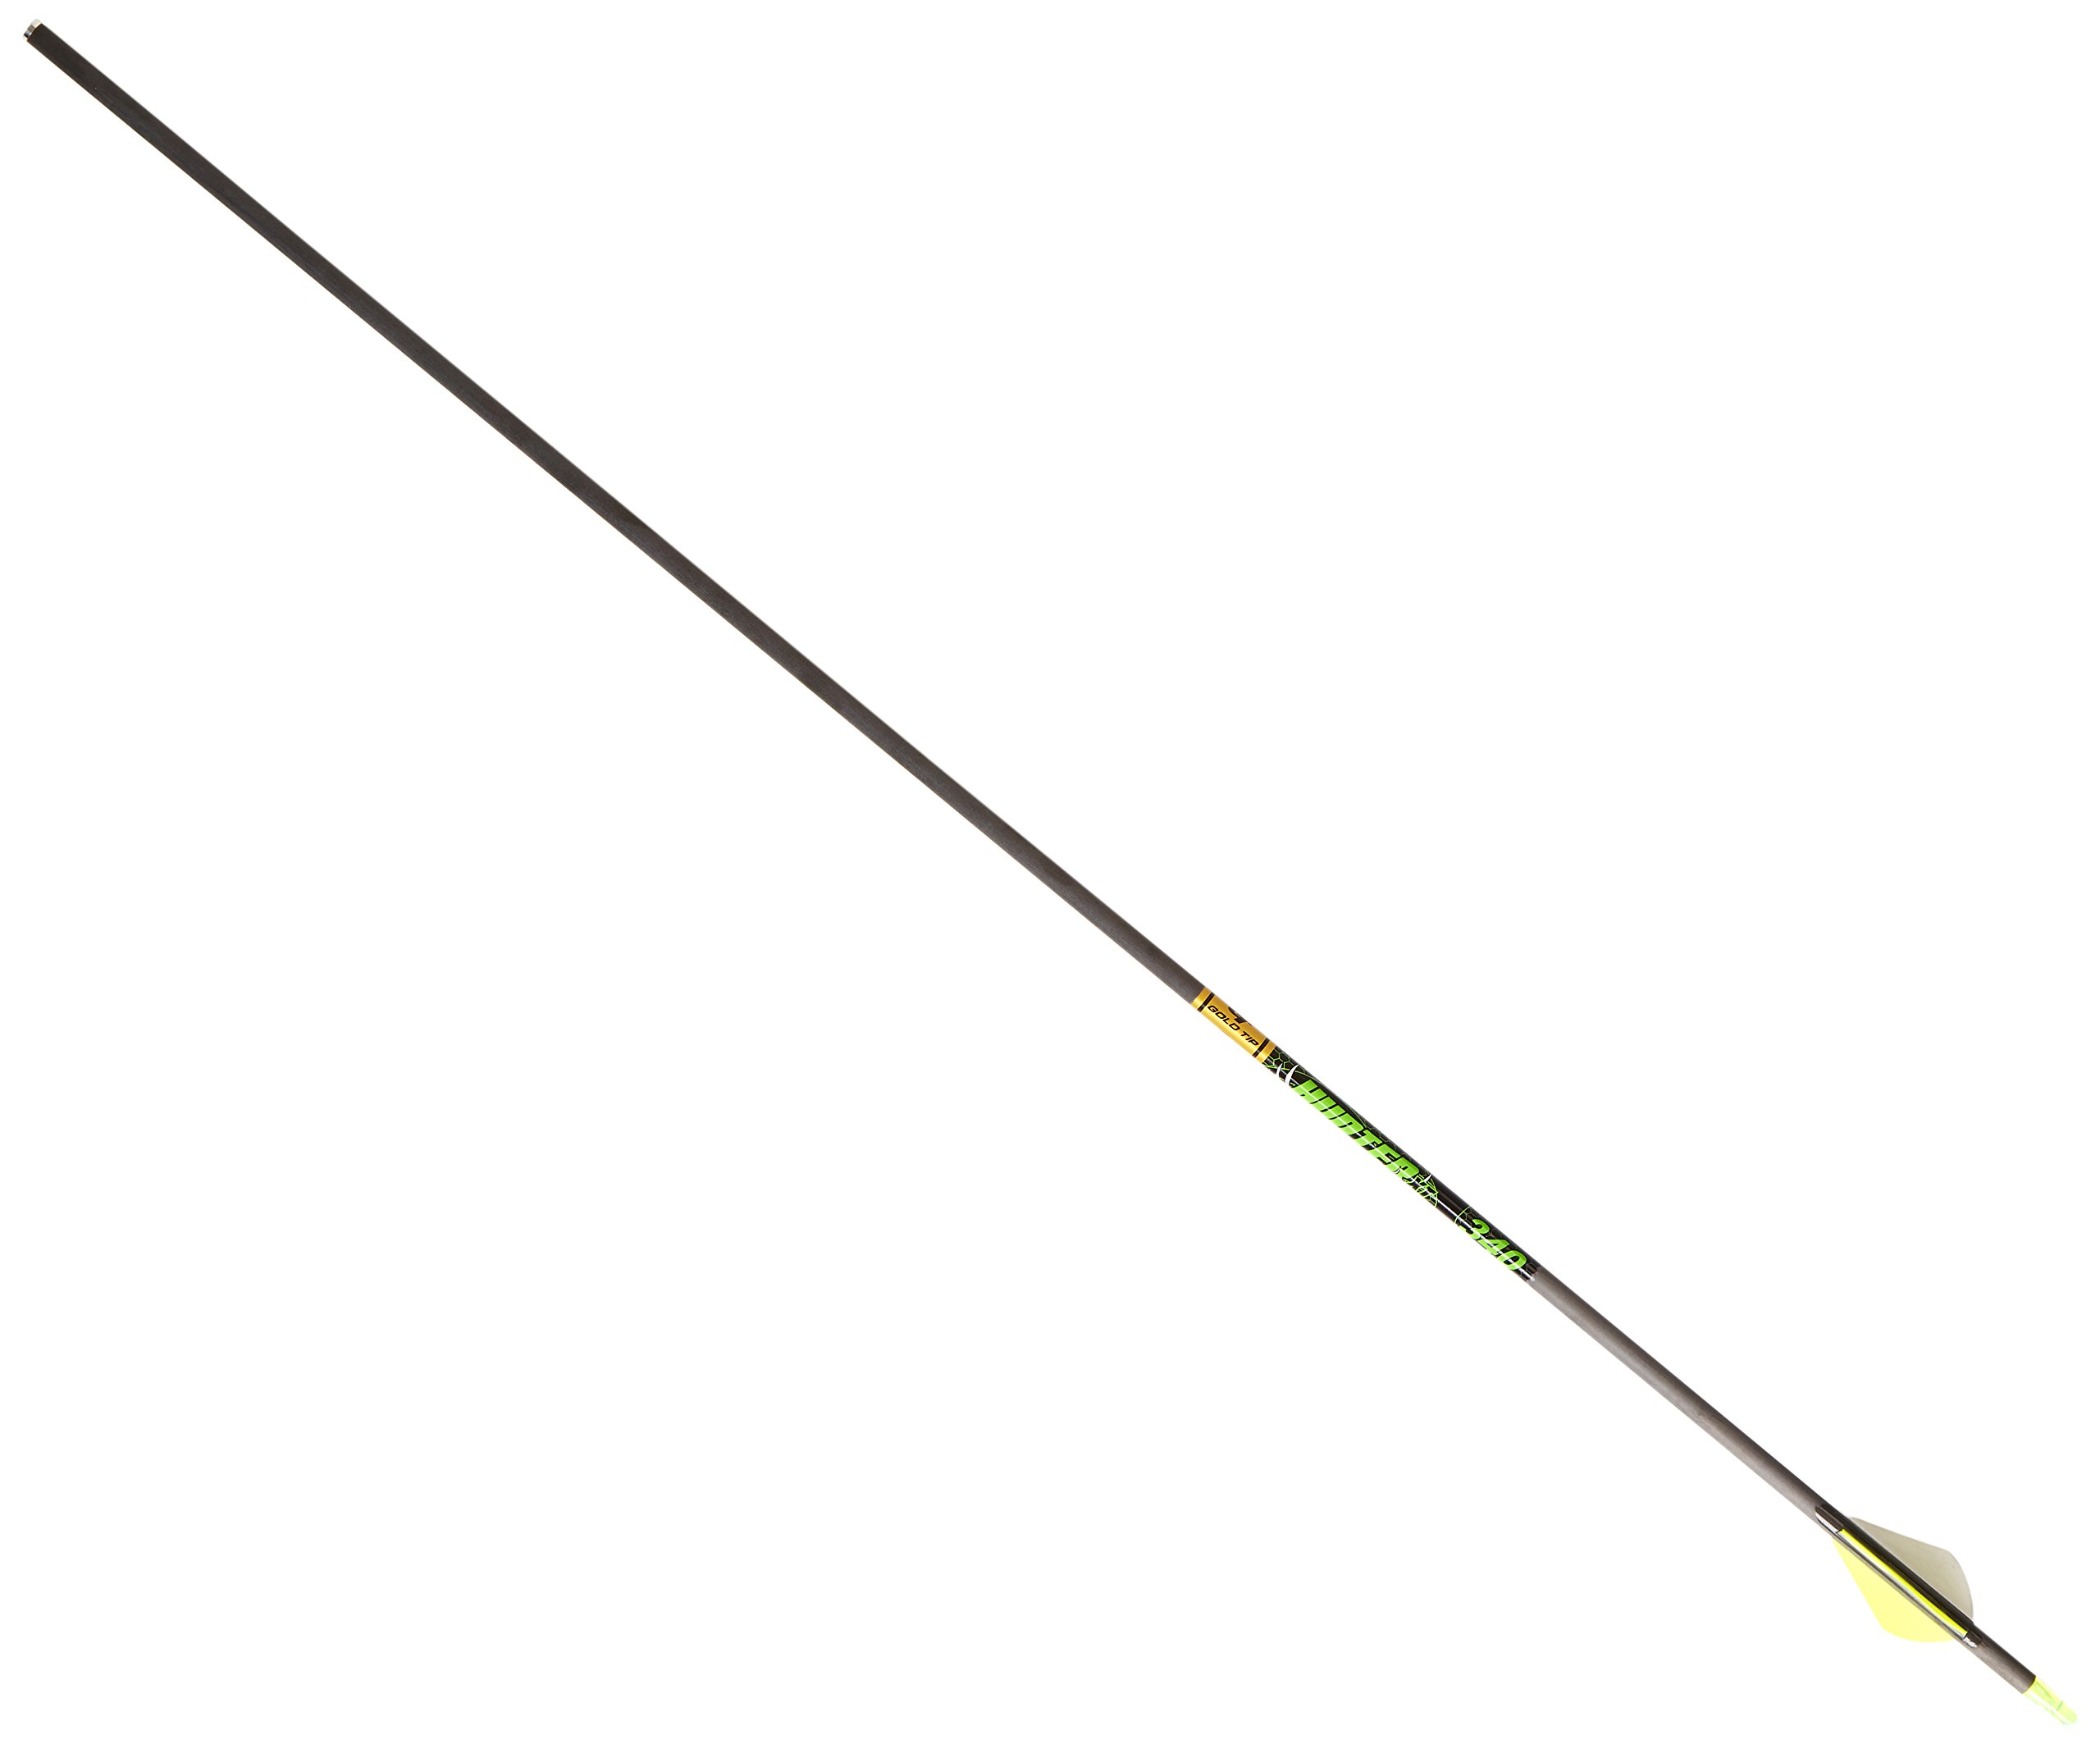 Gold Tip Hunter XT Arrows with Raptor Vane (Pack of 6), Black, 340 by Gold Tip